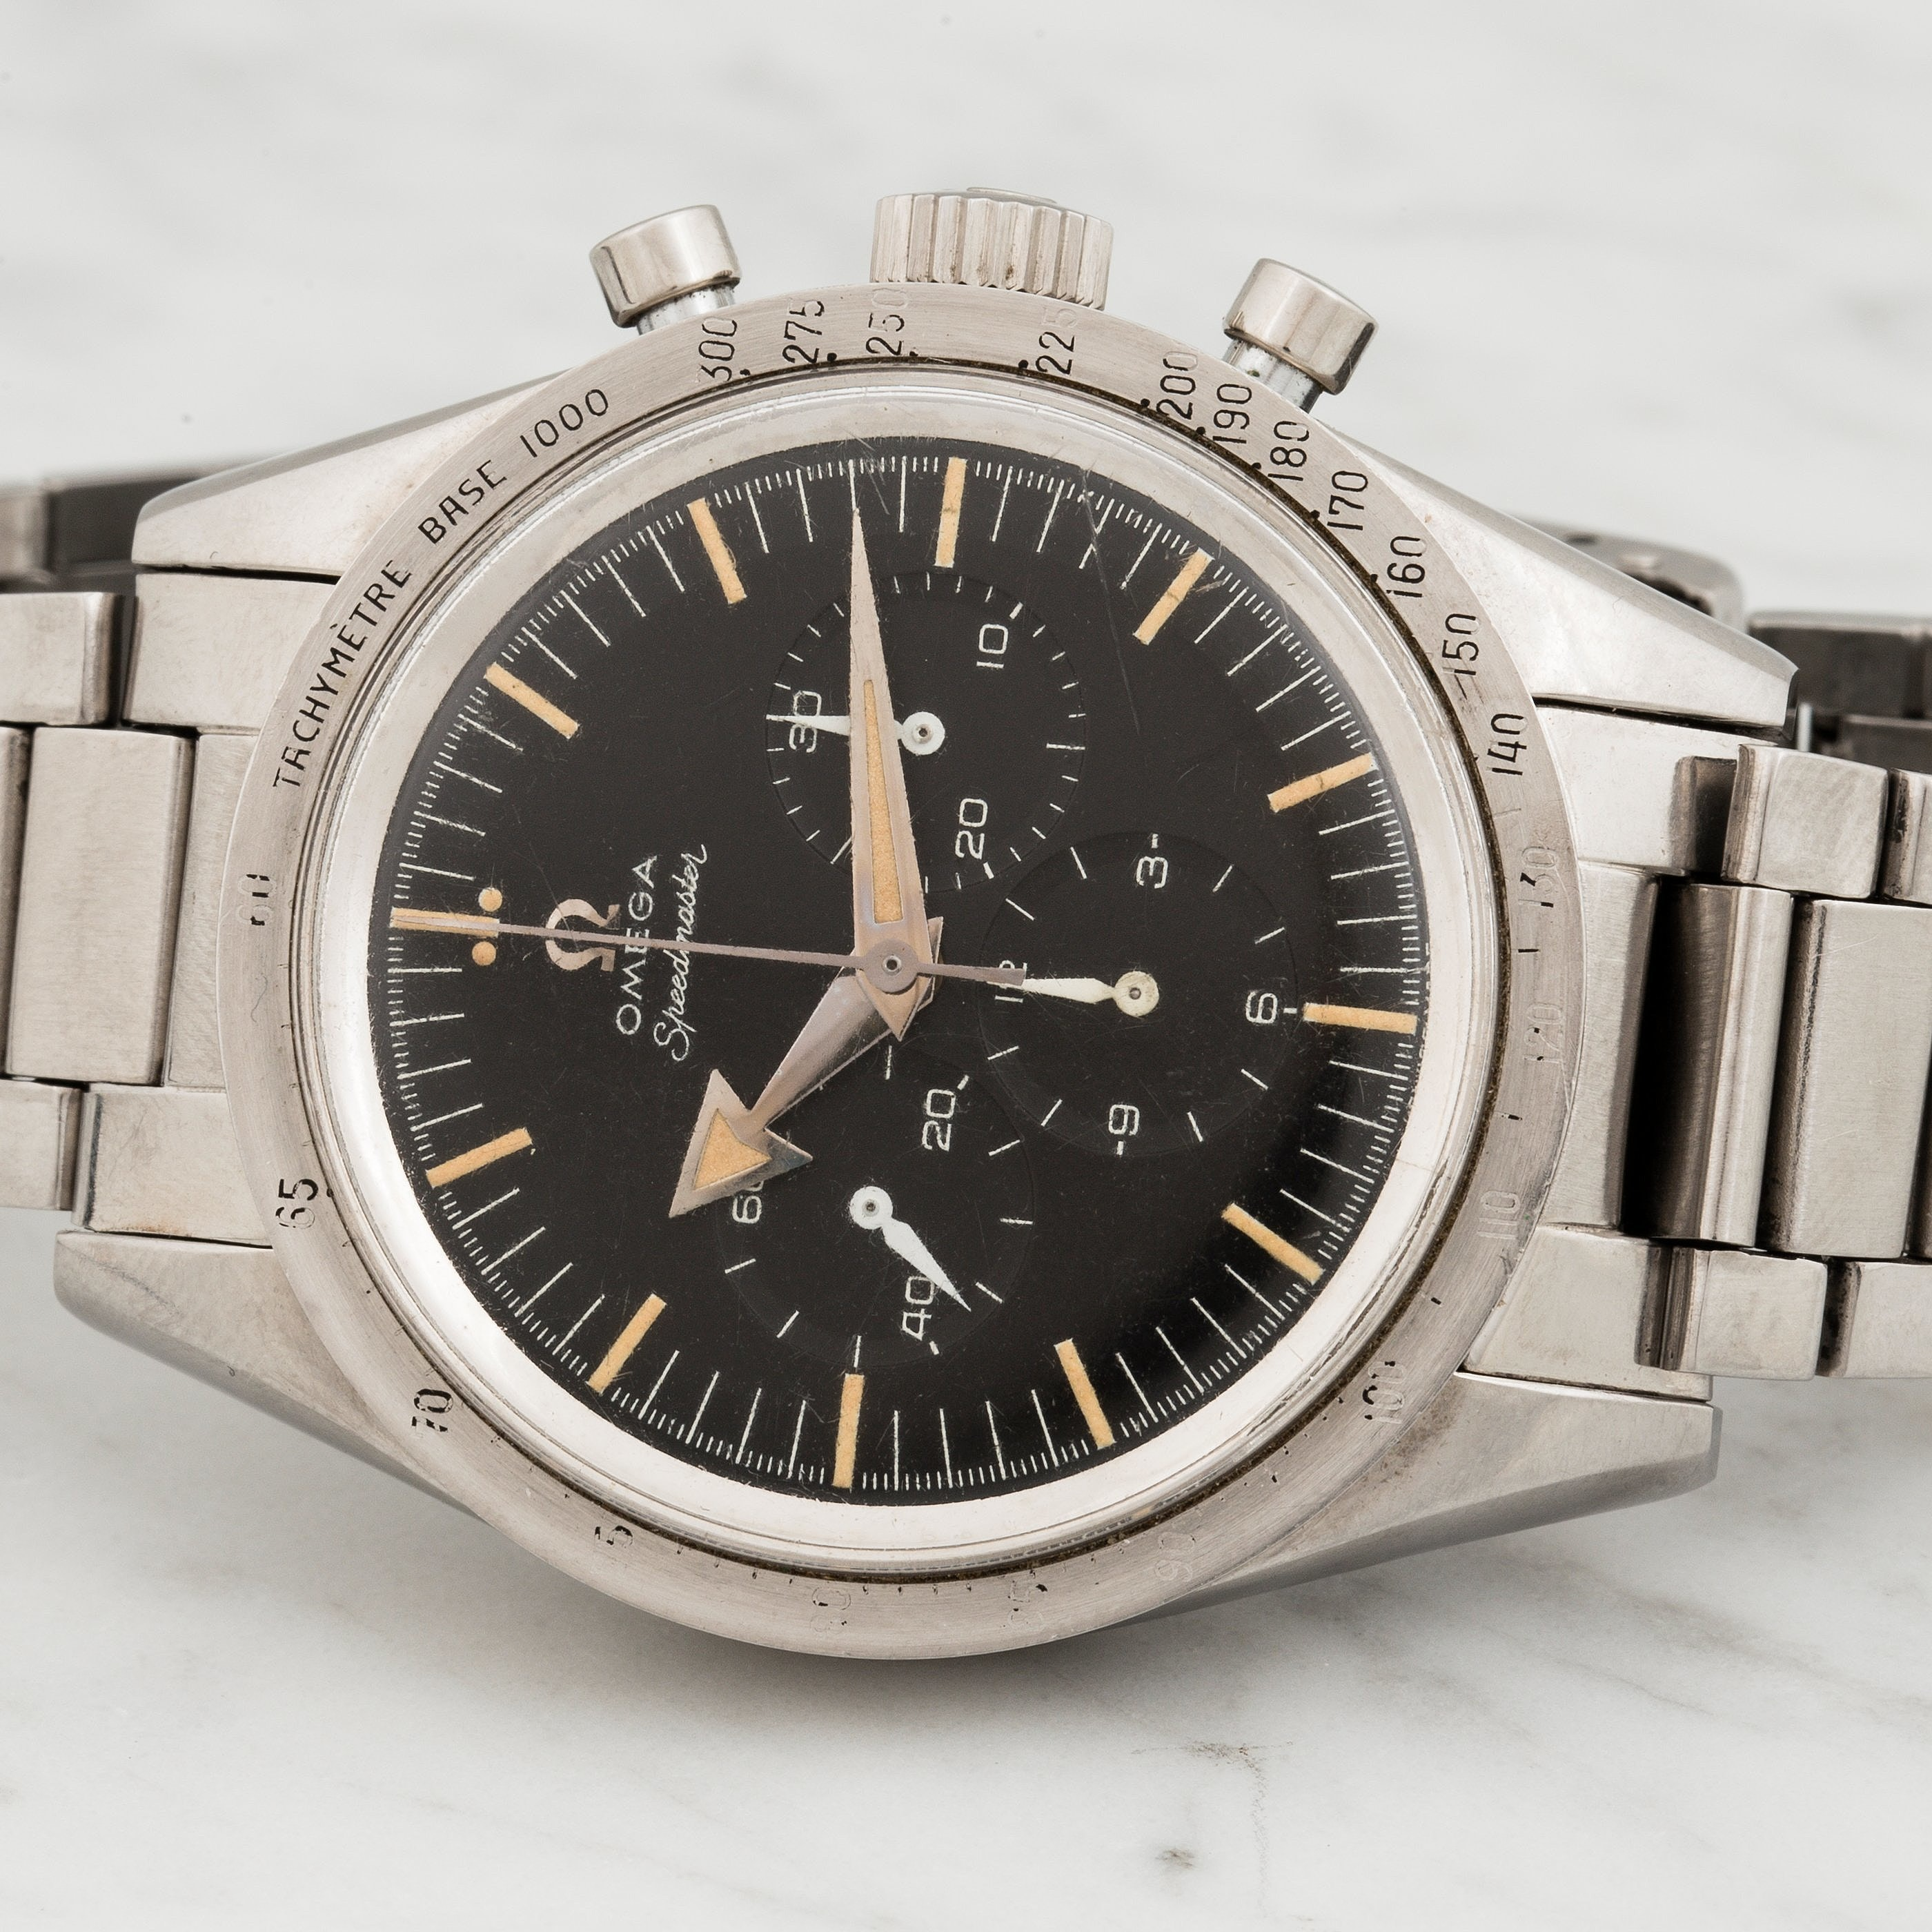 Auction Report: This Barn Find Omega Speedmaster Reference 2998-1 Just Sold For $110,700 Auction Report: This Barn Find Omega Speedmaster Reference 2998-1 Just Sold For $110,700 omega 2